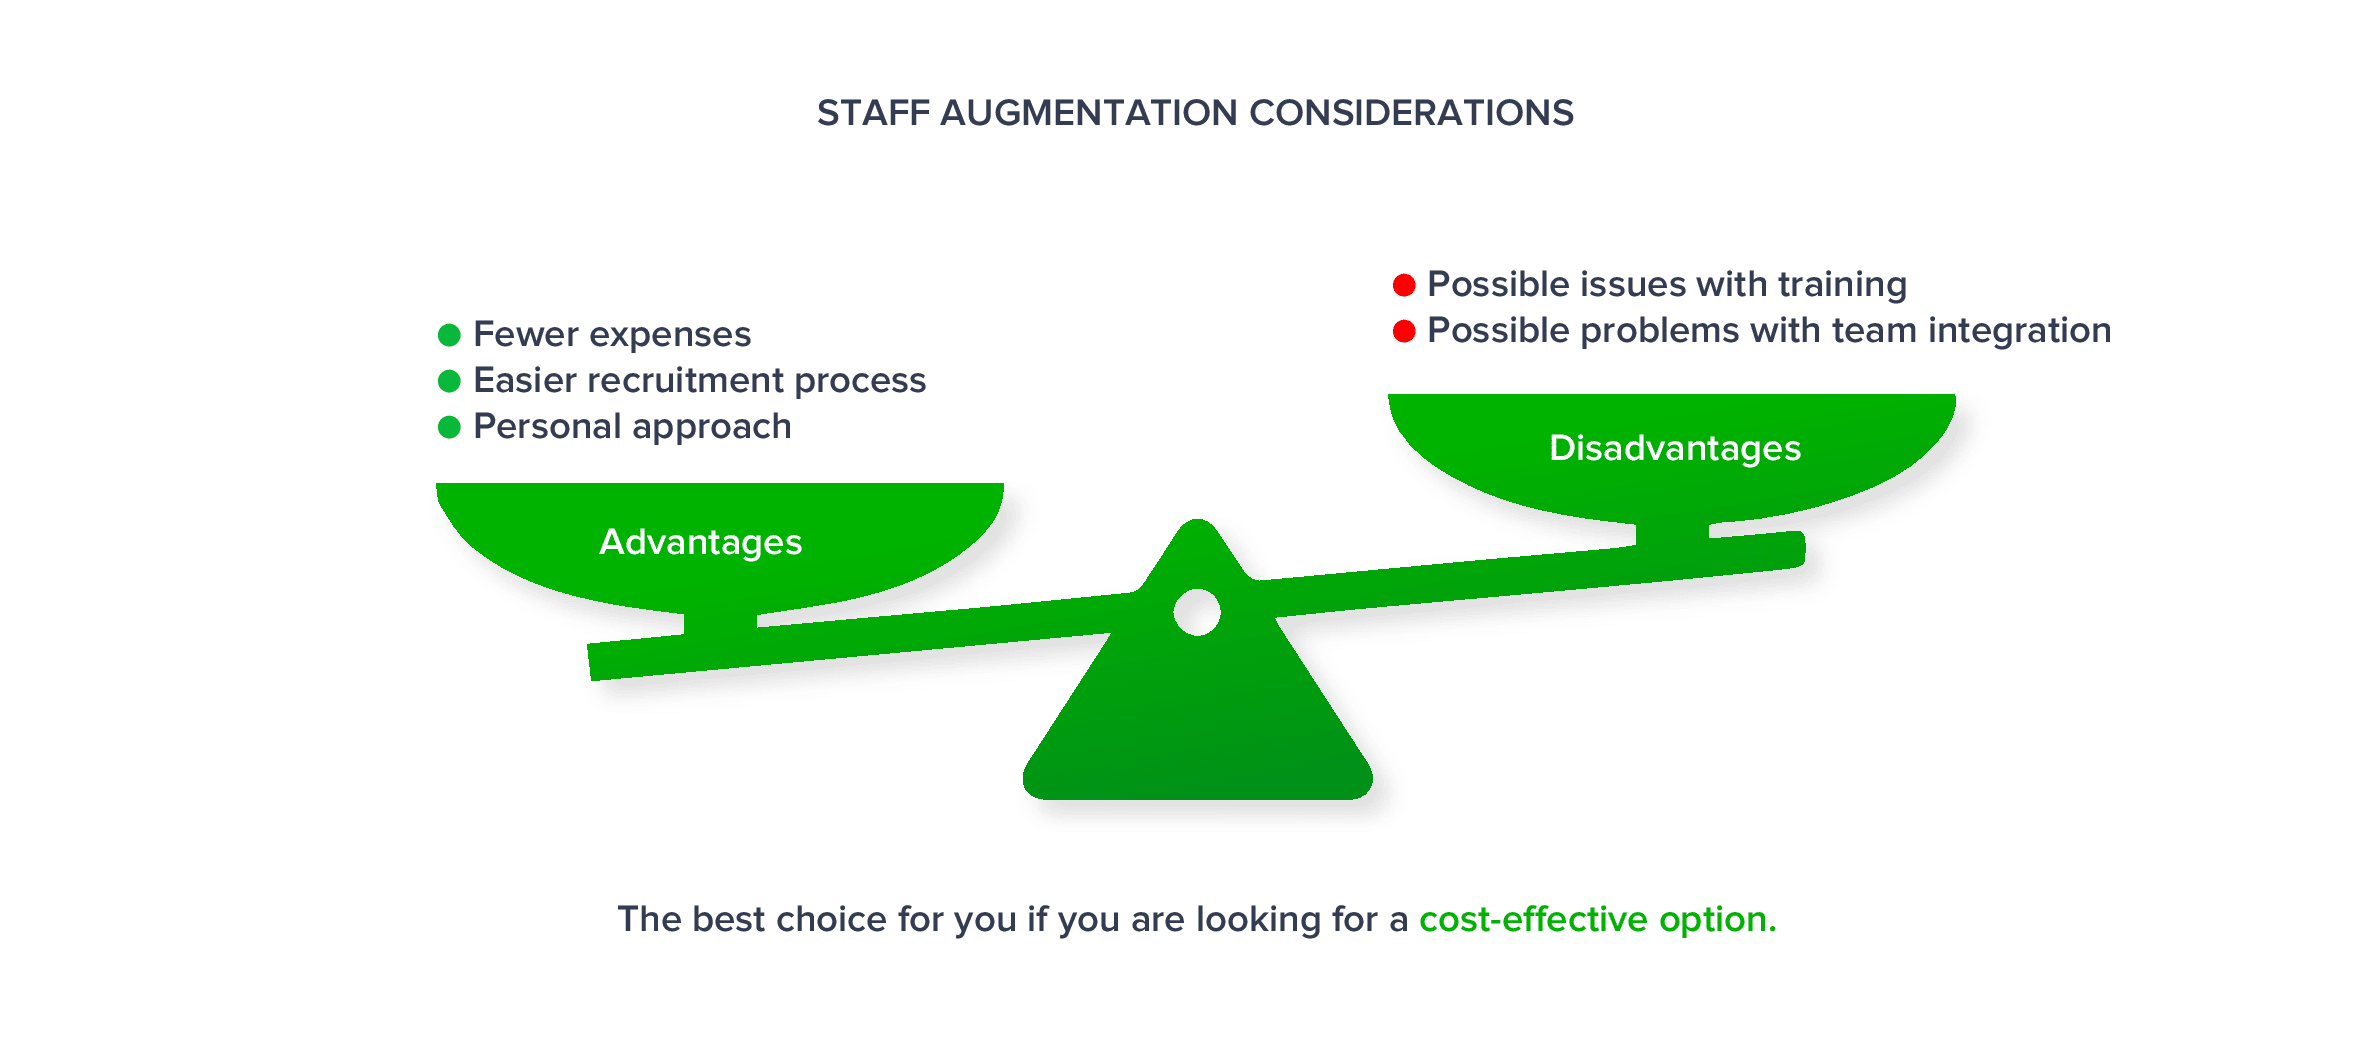 Staff Augmentation Considerations - IT Outsourcing and Staff Augmentation